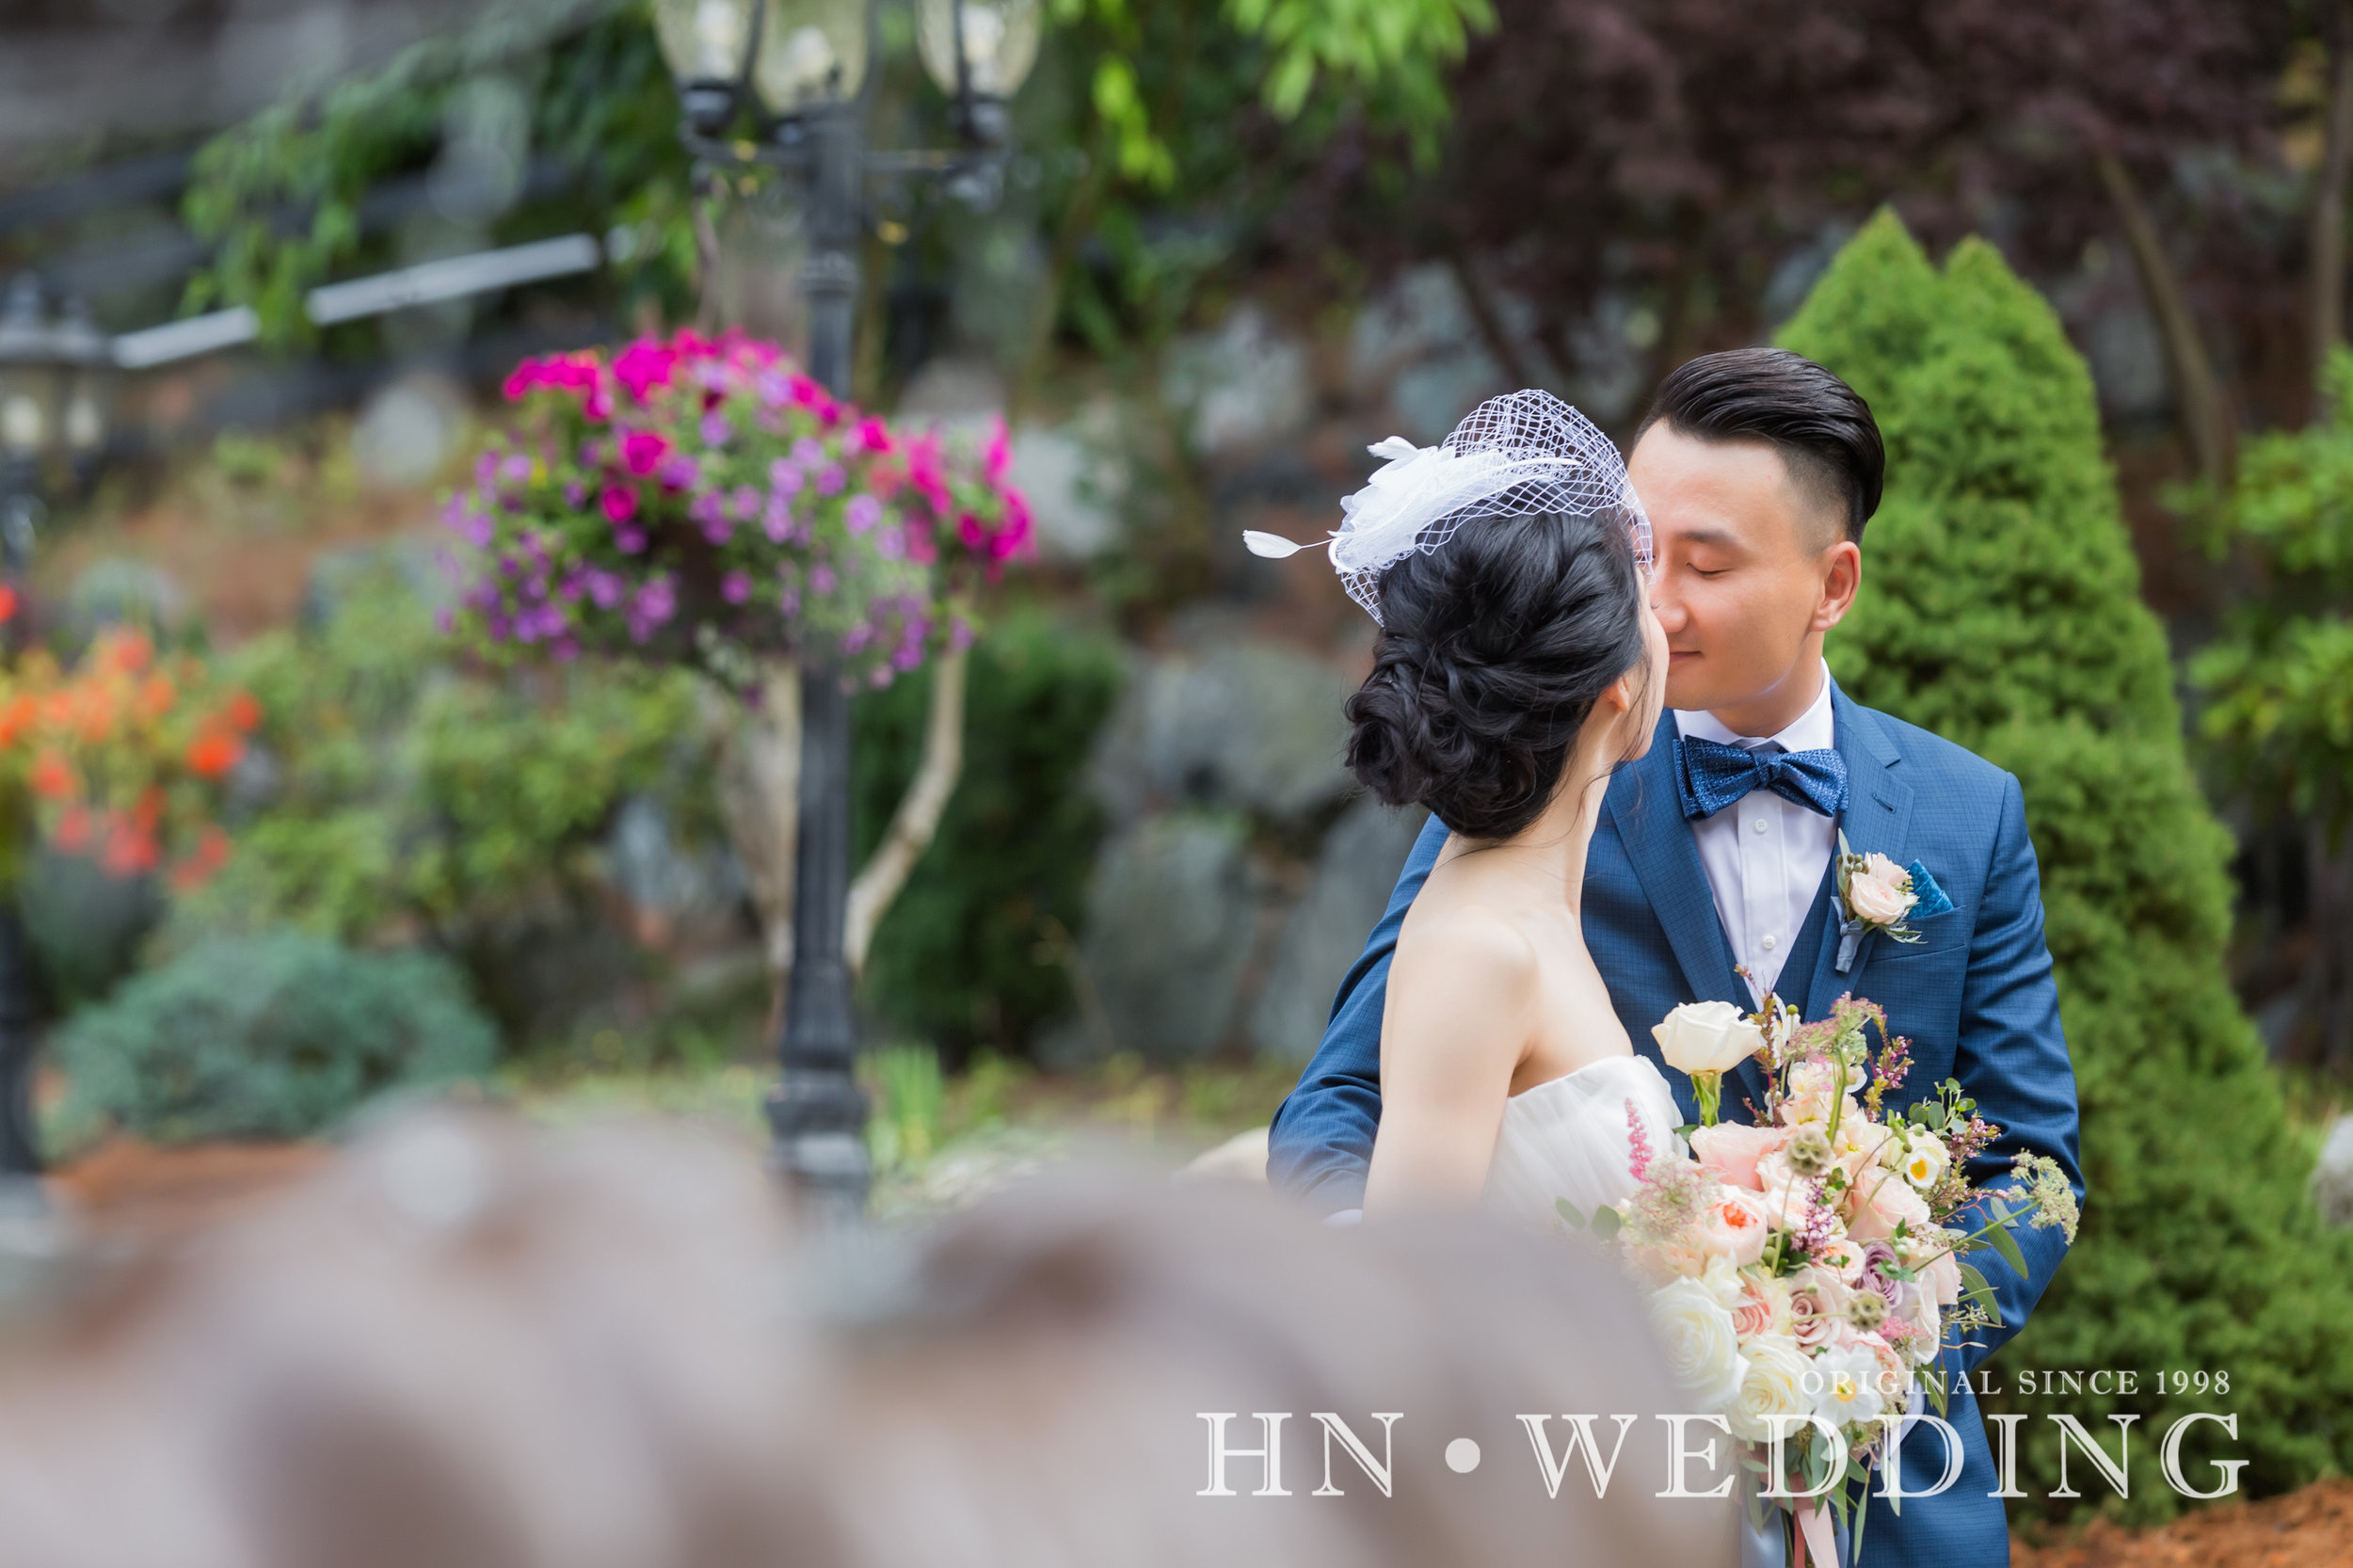 hnweddingweddingday20180830-101.jpg